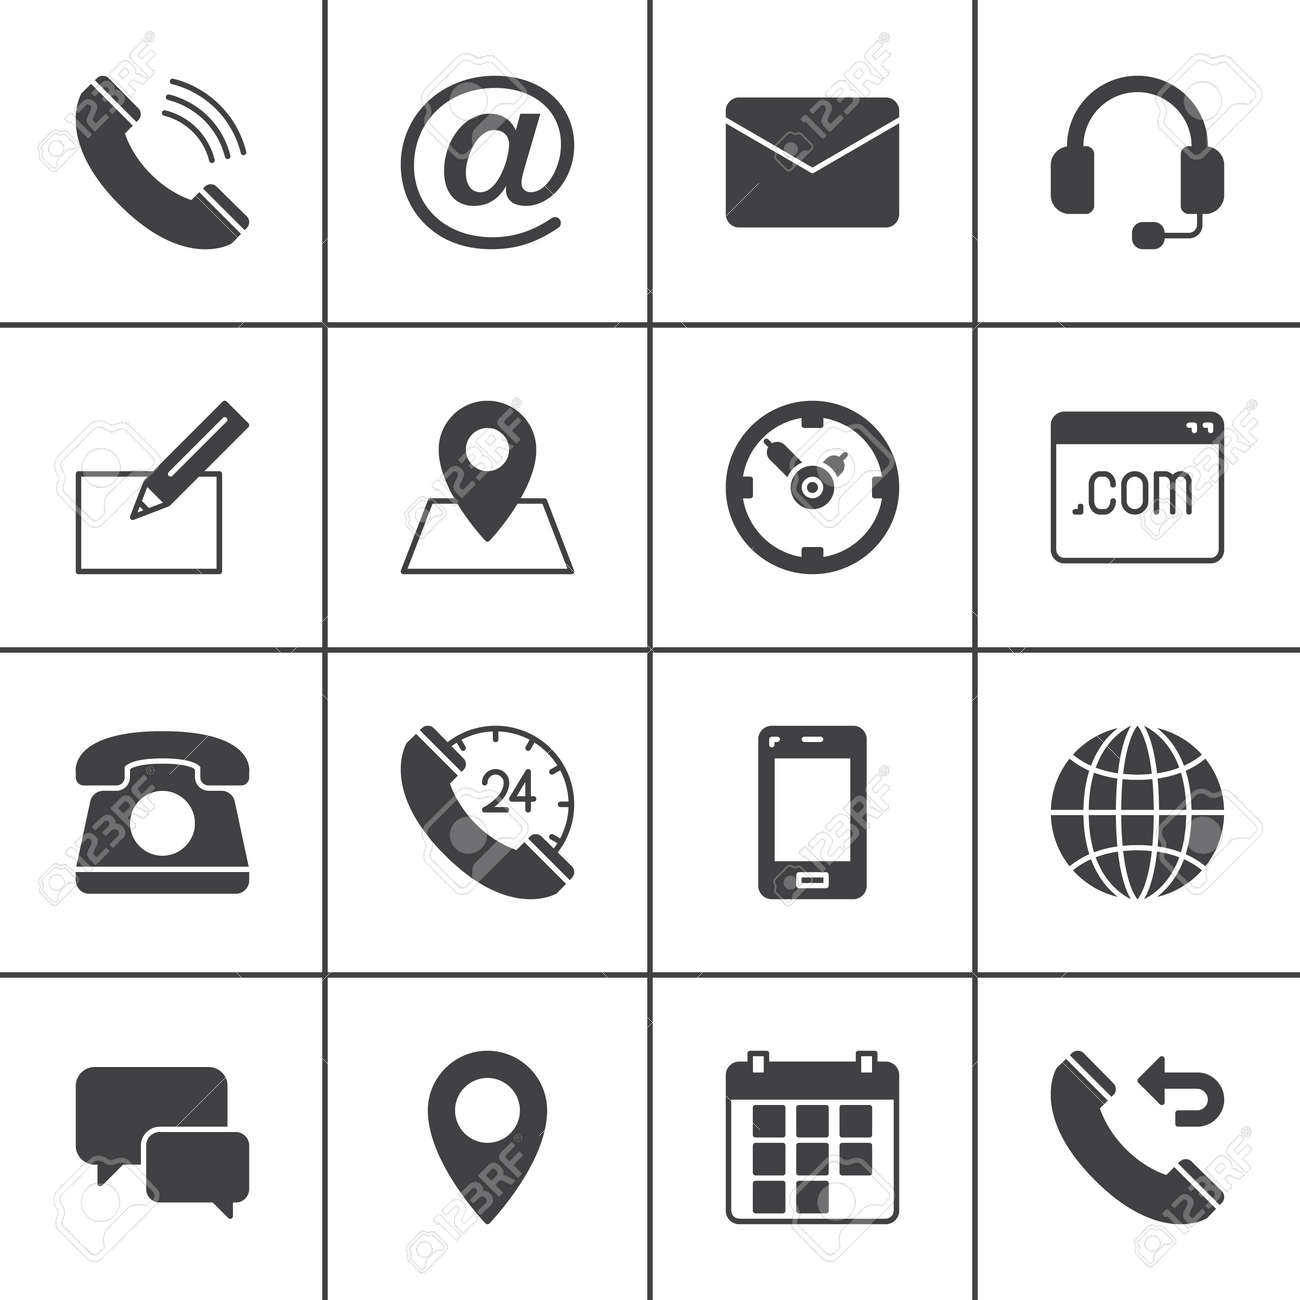 Contact vector icons set, modern solid symbol collection, filled